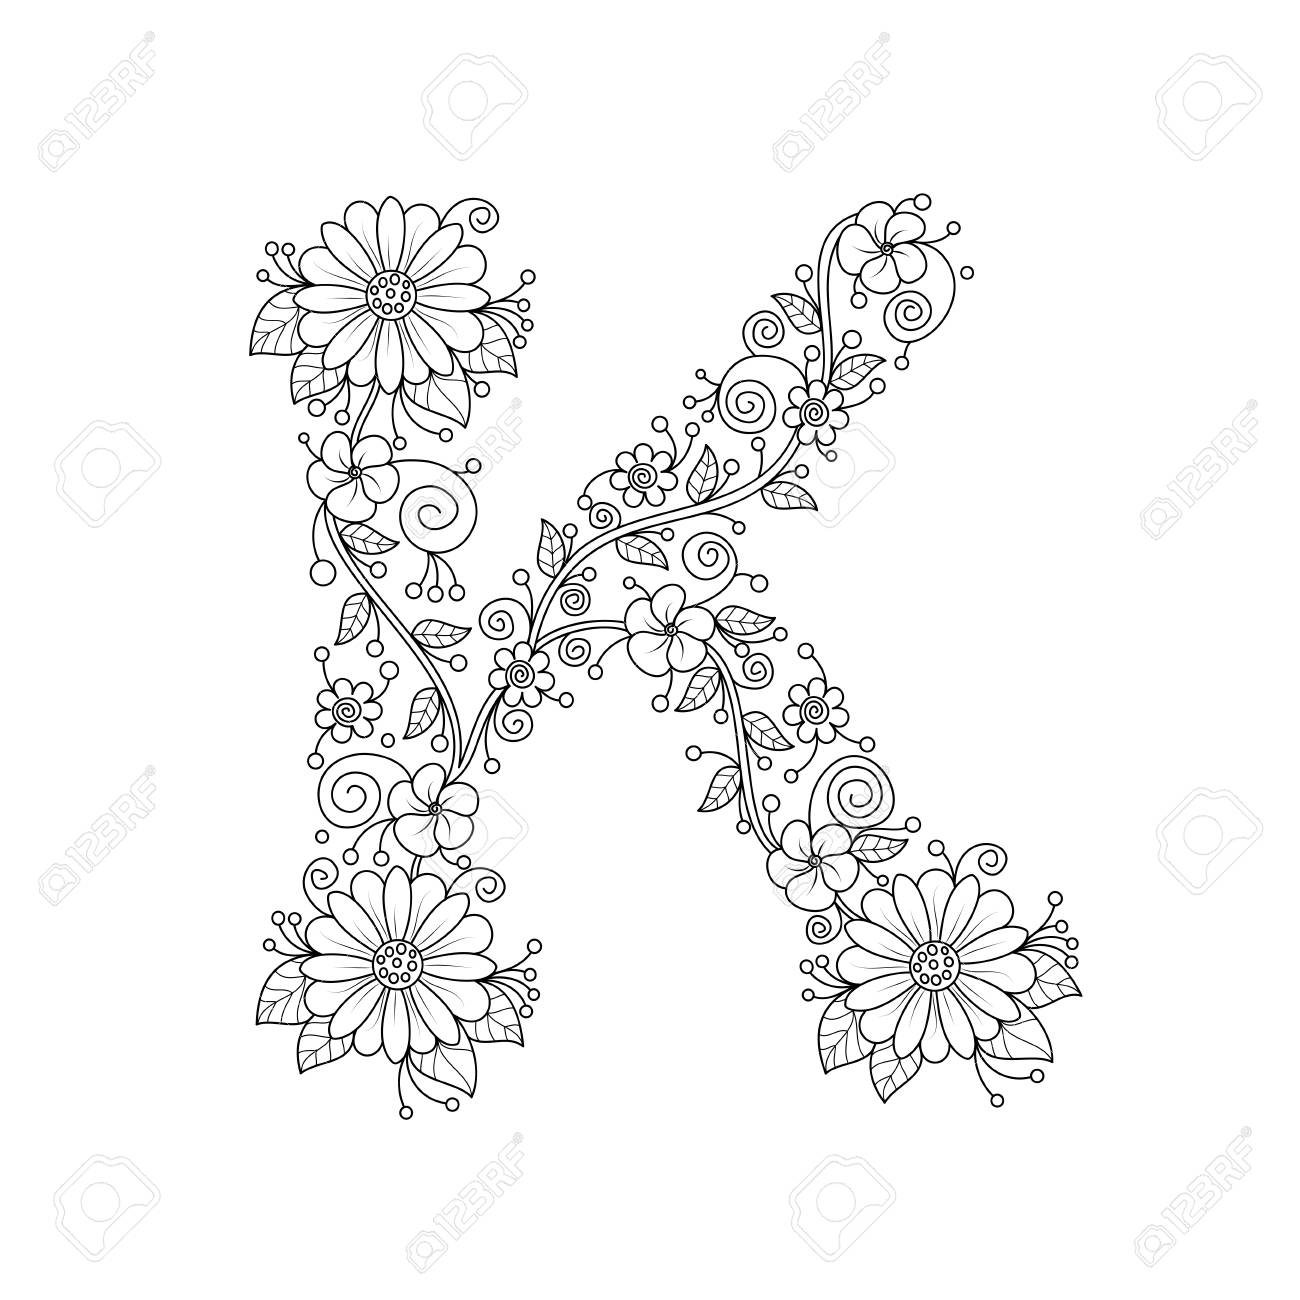 - Floral Alphabet Letter K Coloring Book For Adults. Vector